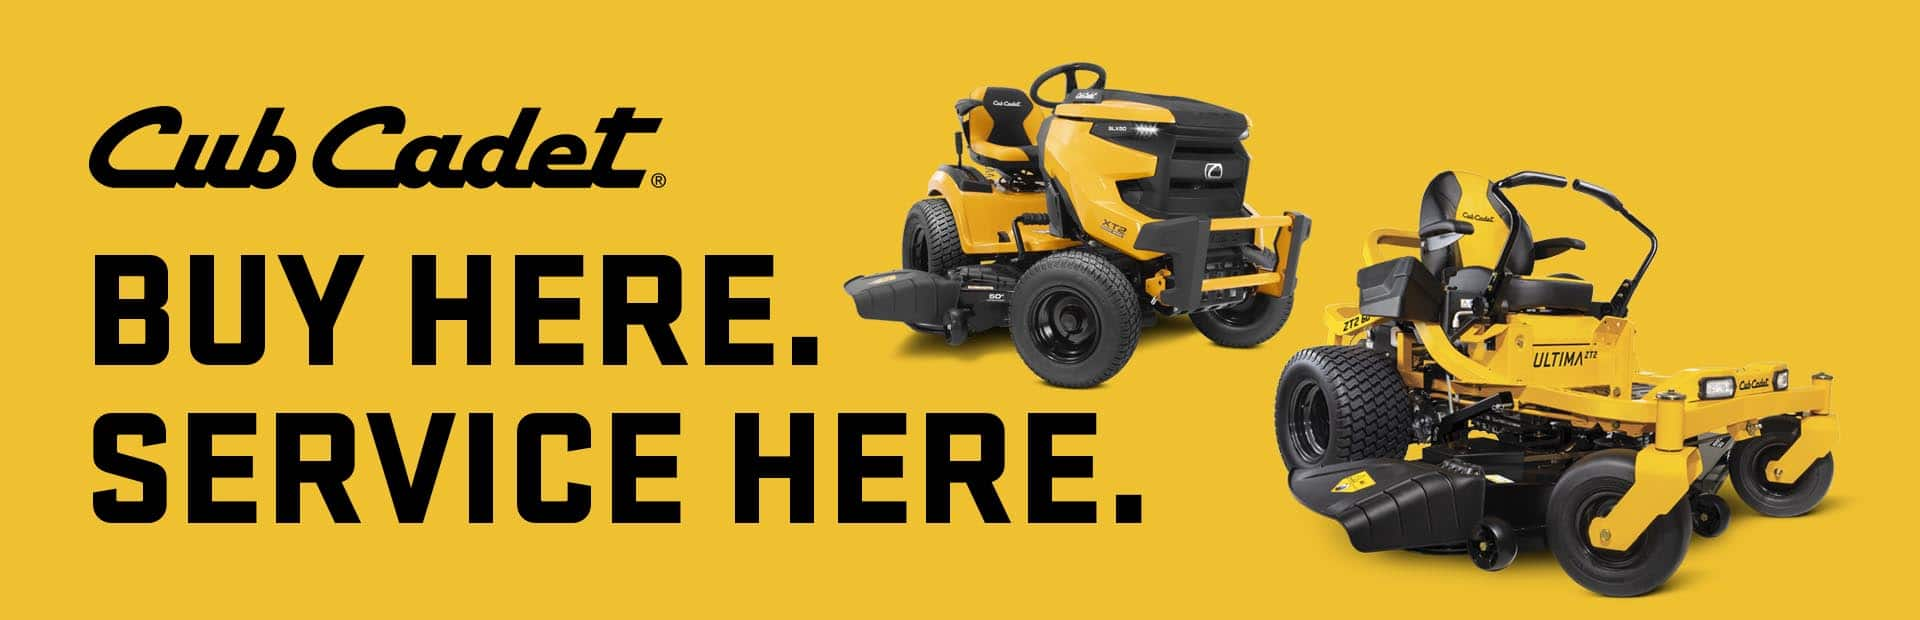 banner-cub-cadet-buy-here-service-here-new